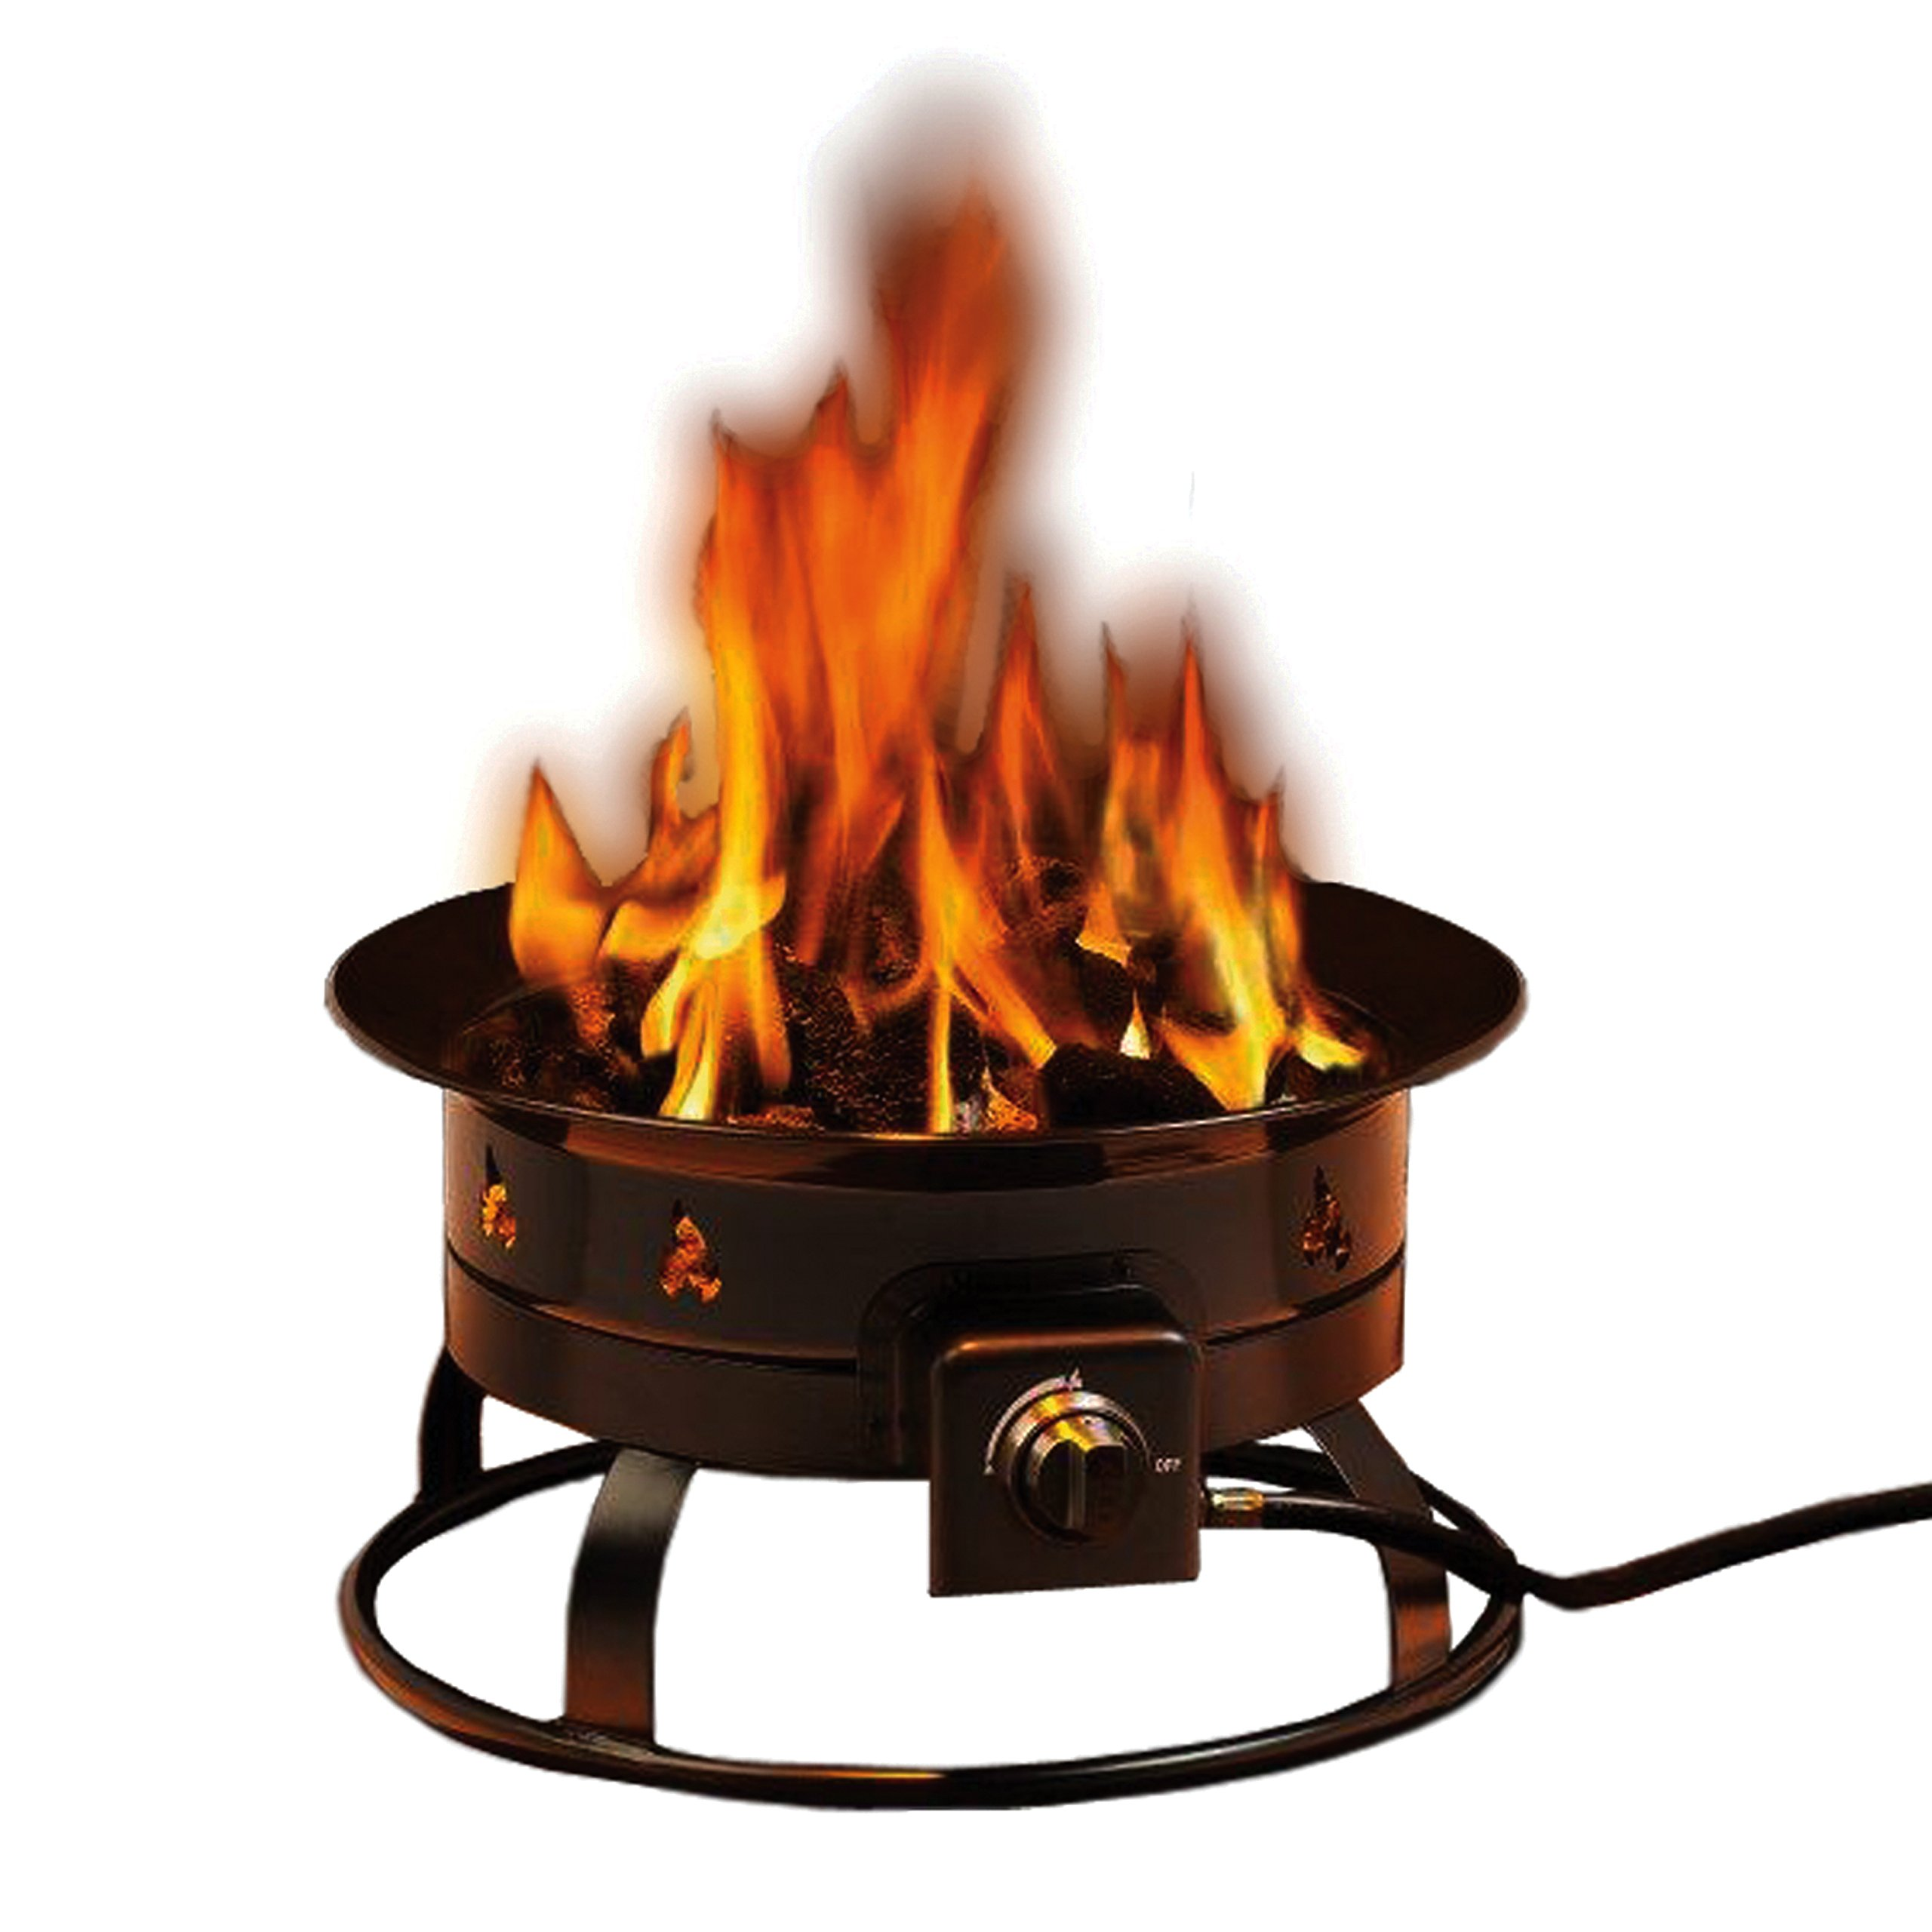 Heininger 5995 58,000 BTU Portable Propane Outdoor Fire Pit by Heininger